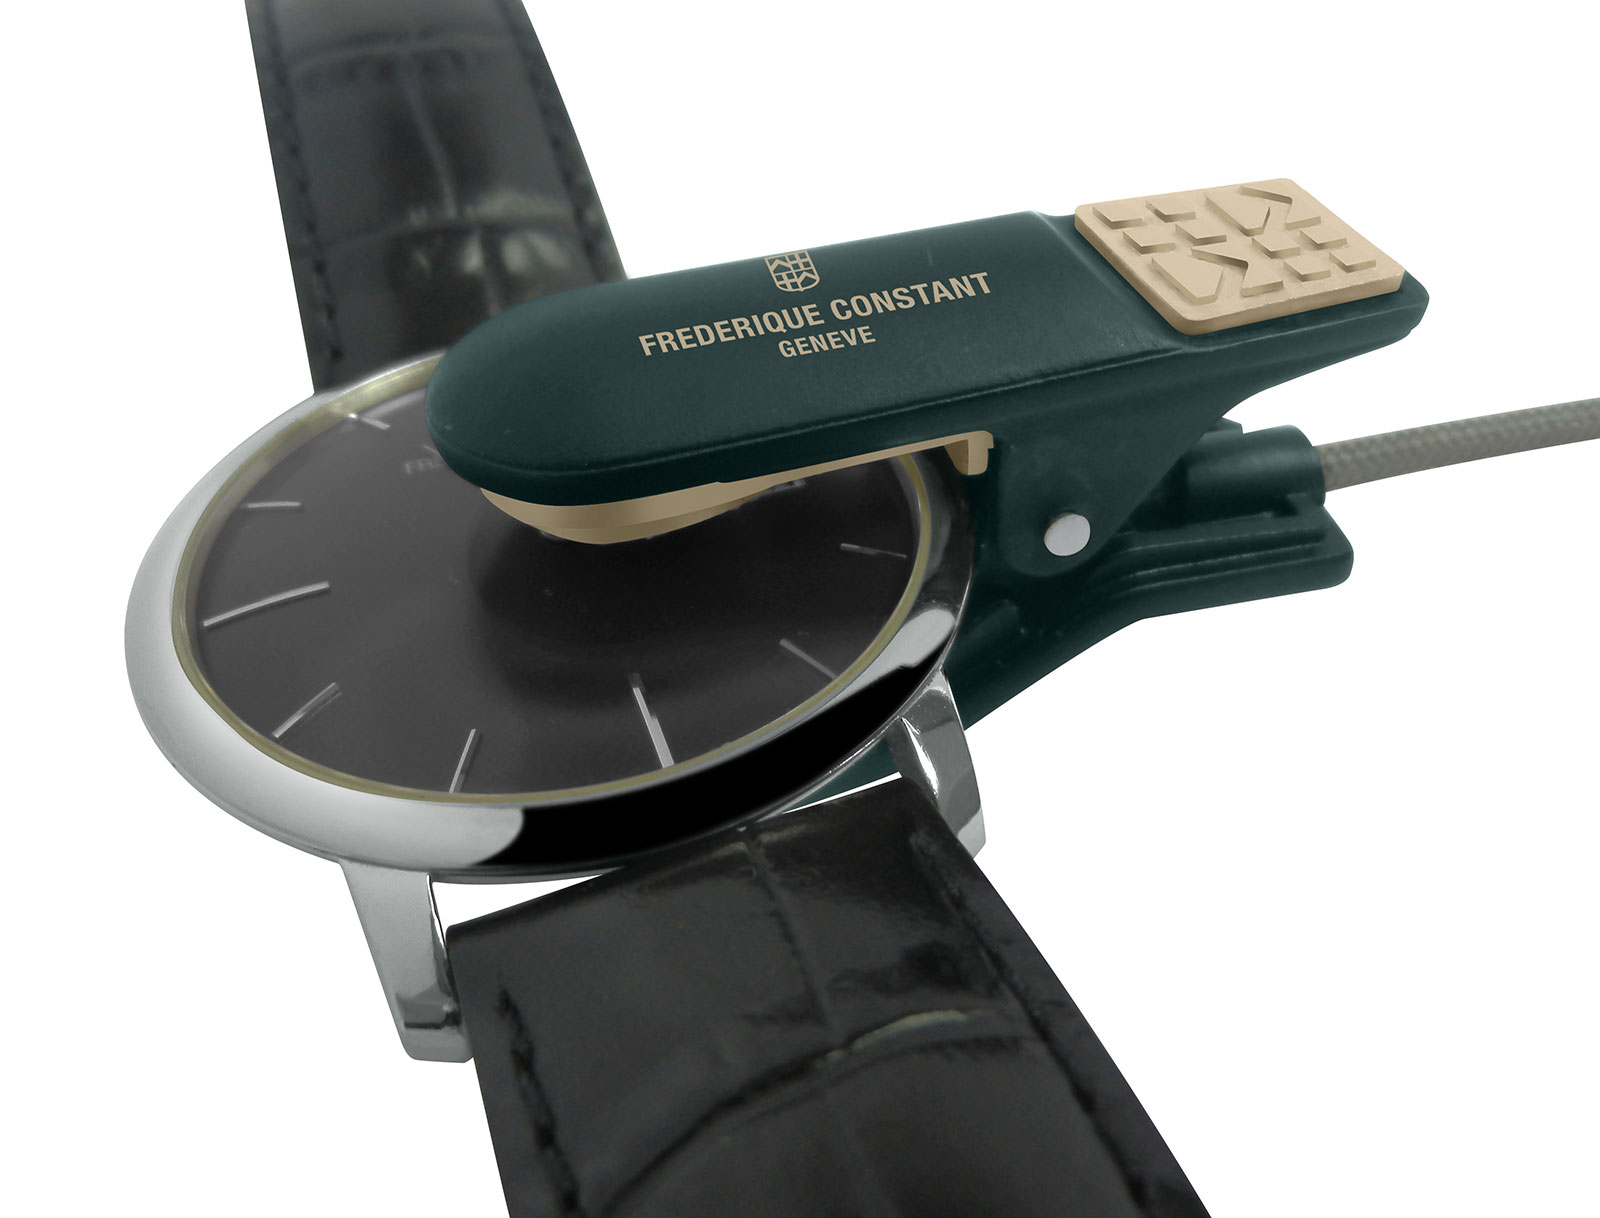 Frederique Constant Analytics watch timing device 2